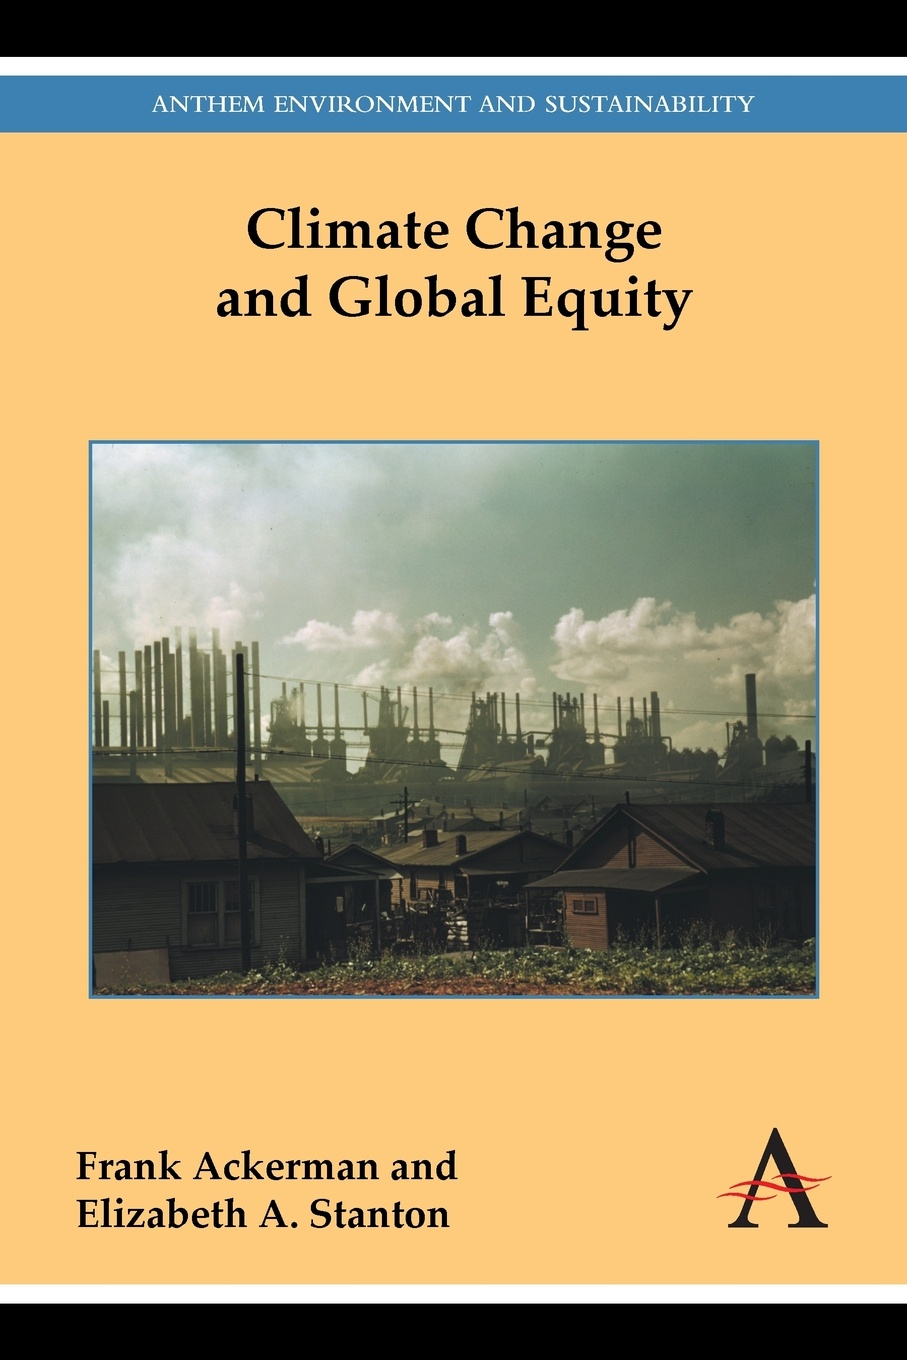 Frank Ackerman, Elizabeth A. Stanton Climate Change and Global Equity bryan frank climate dynamics why does climate vary